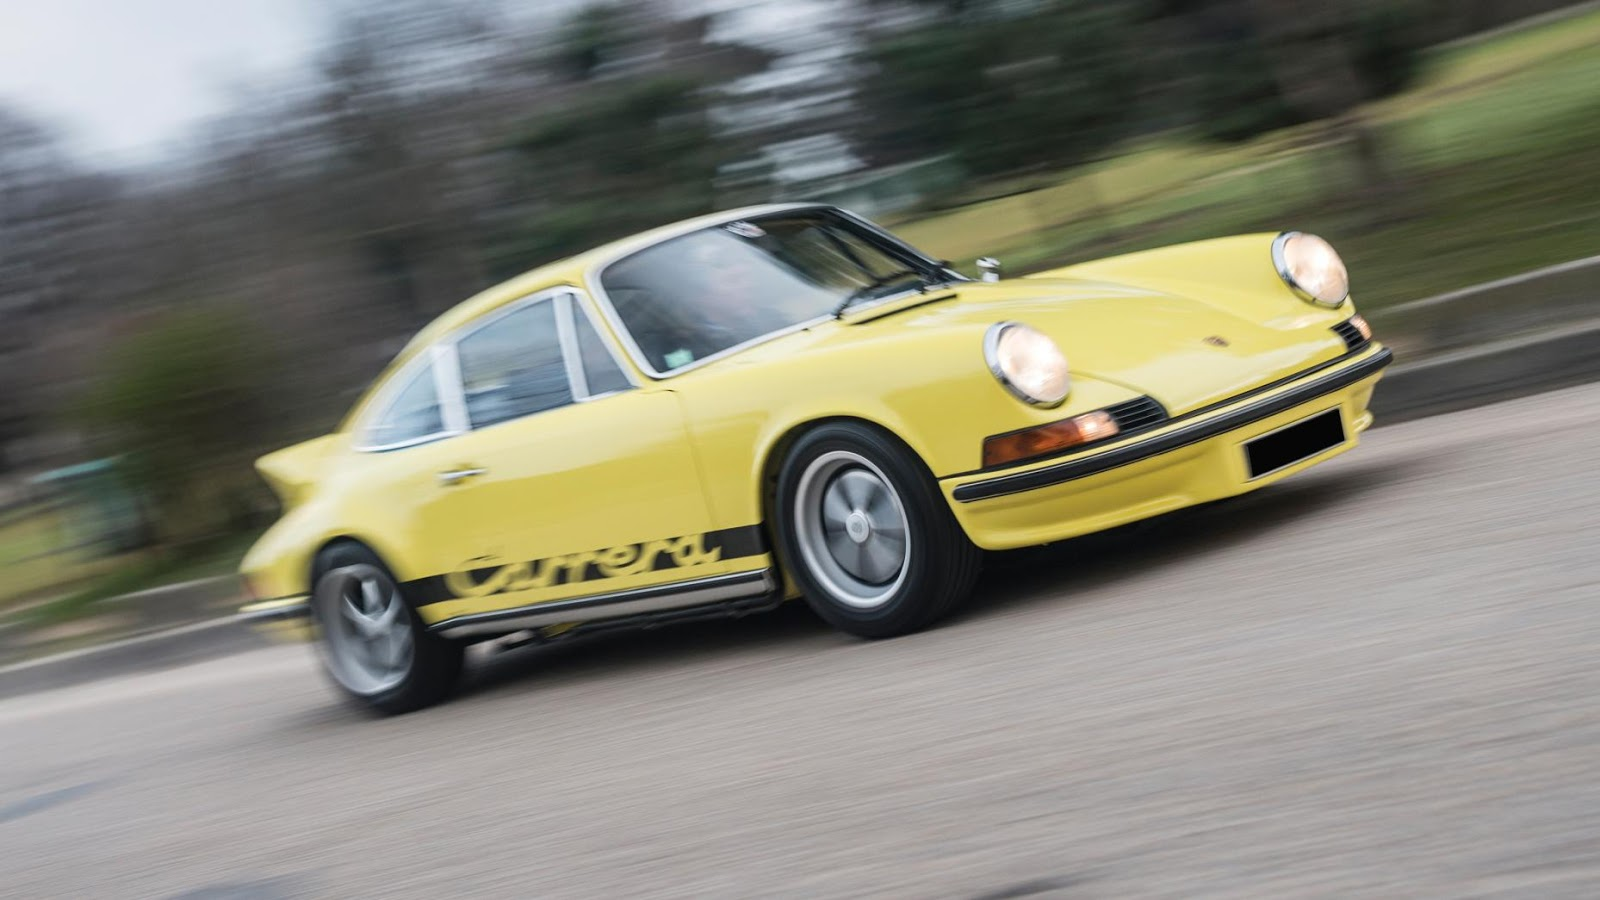 1973 Porsche 911 Carrera RS 2.7 Touring - £ 480k